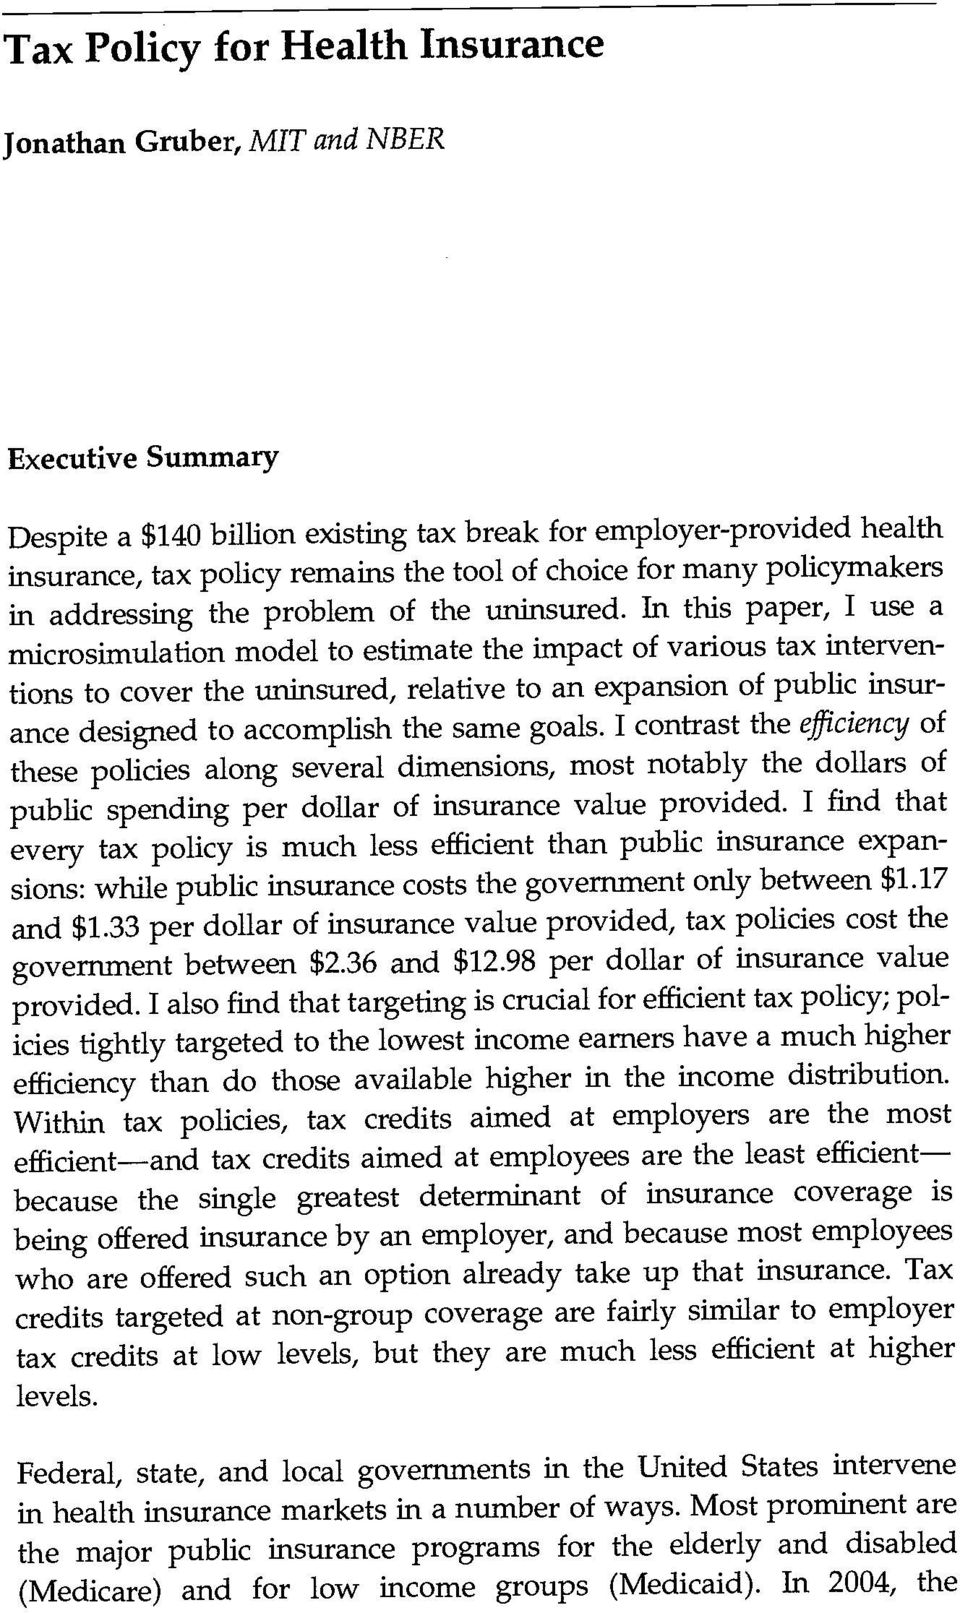 In this paper, I use a microsimulation model to estimate the impact of various tax interventions to cover the uninsured, relative to an expansion of public insurance designed to accomplish the same